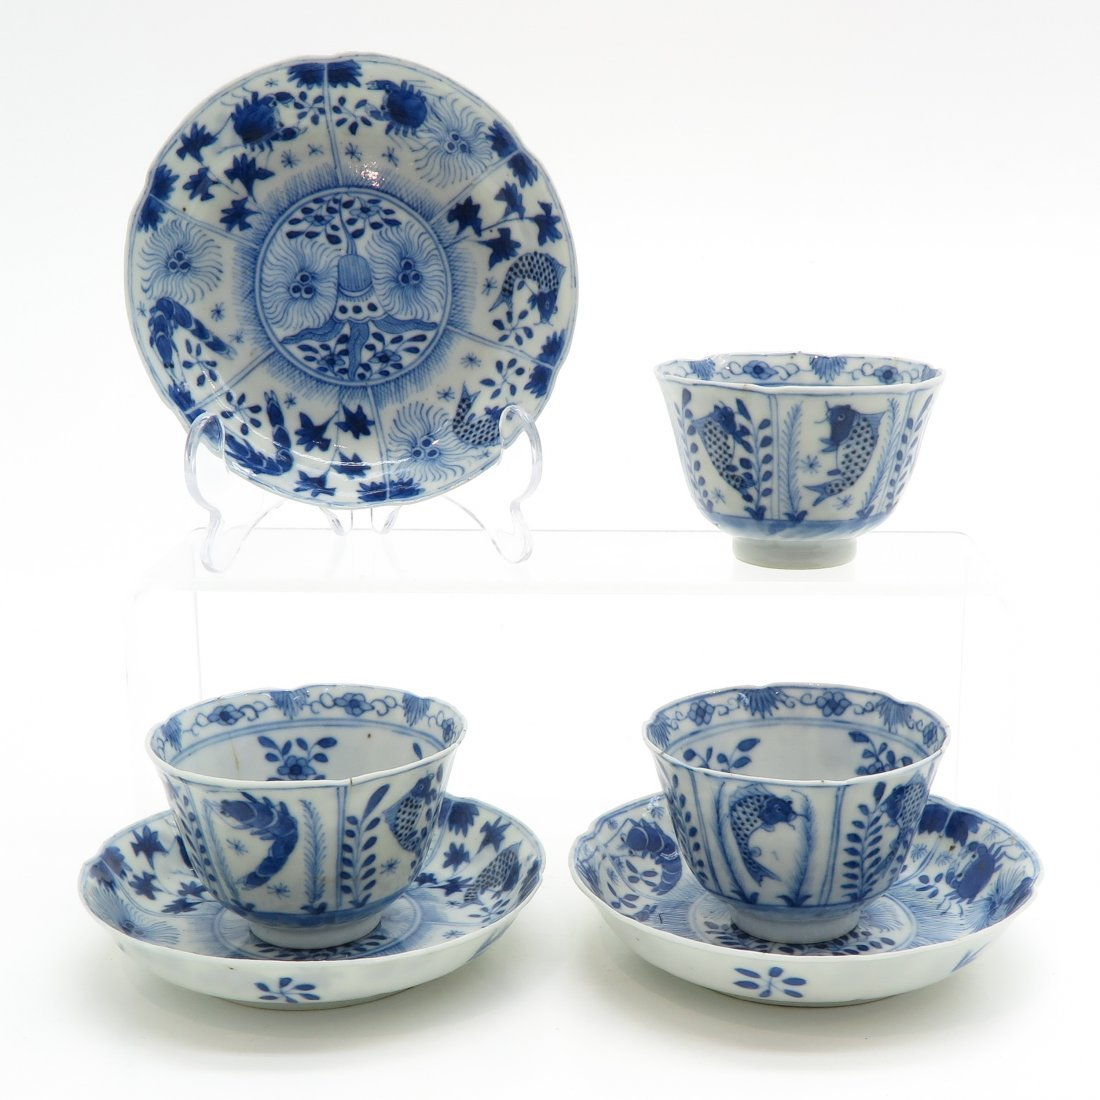 18th Century Kangxi Period Cups and Saucers